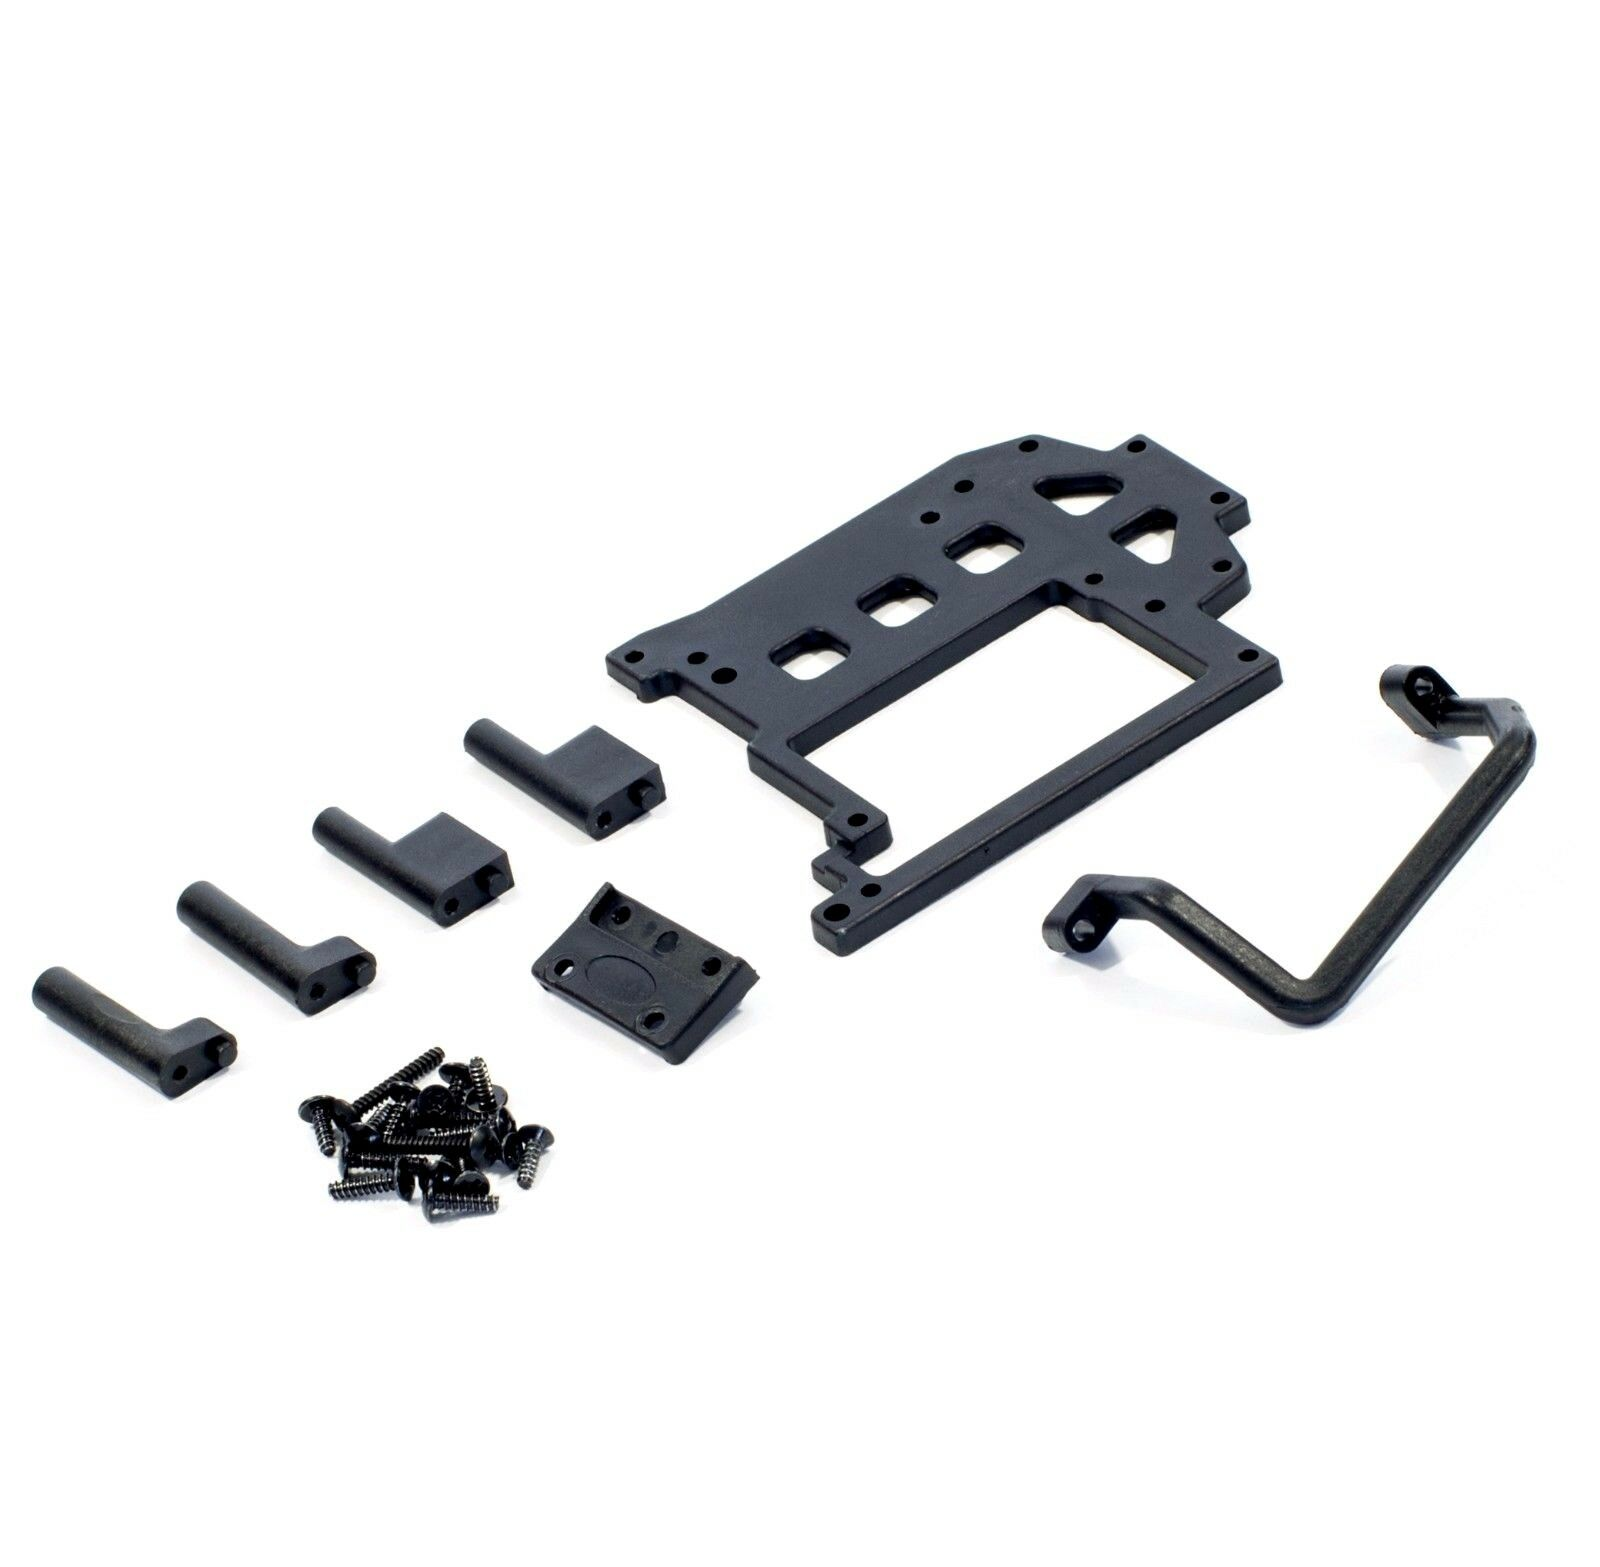 02047 Radio Tray Post 4pcs 1//10 Scale Spare Part For HSP Atomic RC Warhead Buggy